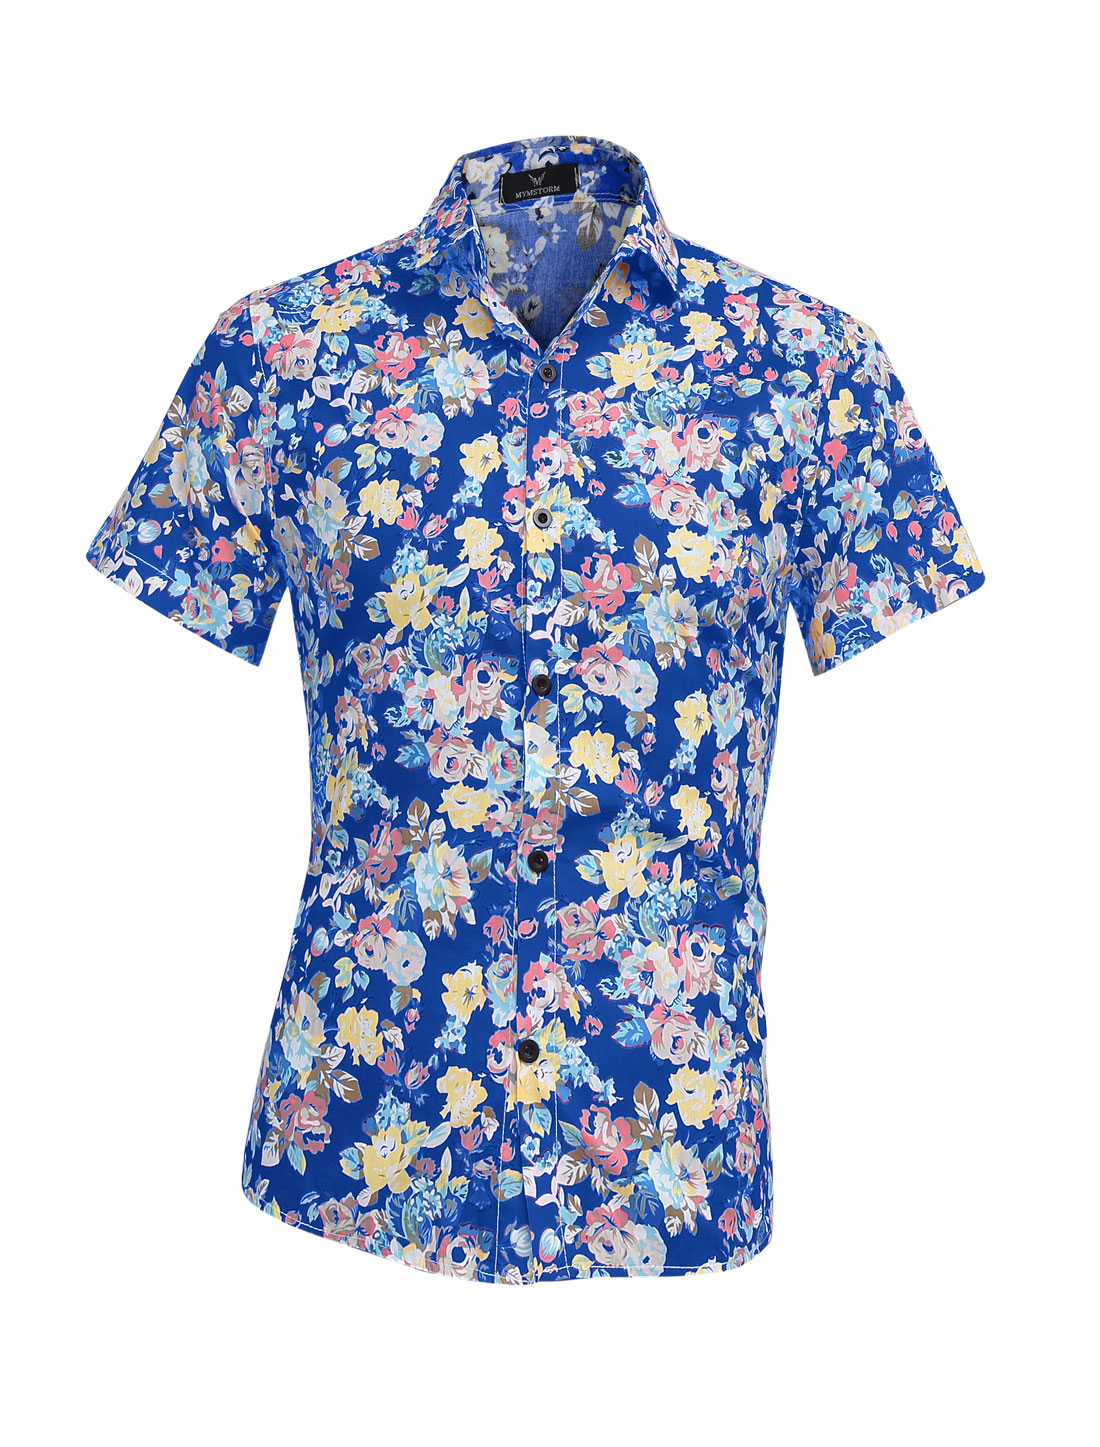 Men Summer Buttons Up Closed Flower Pattern Top Shirt Royal Blue M